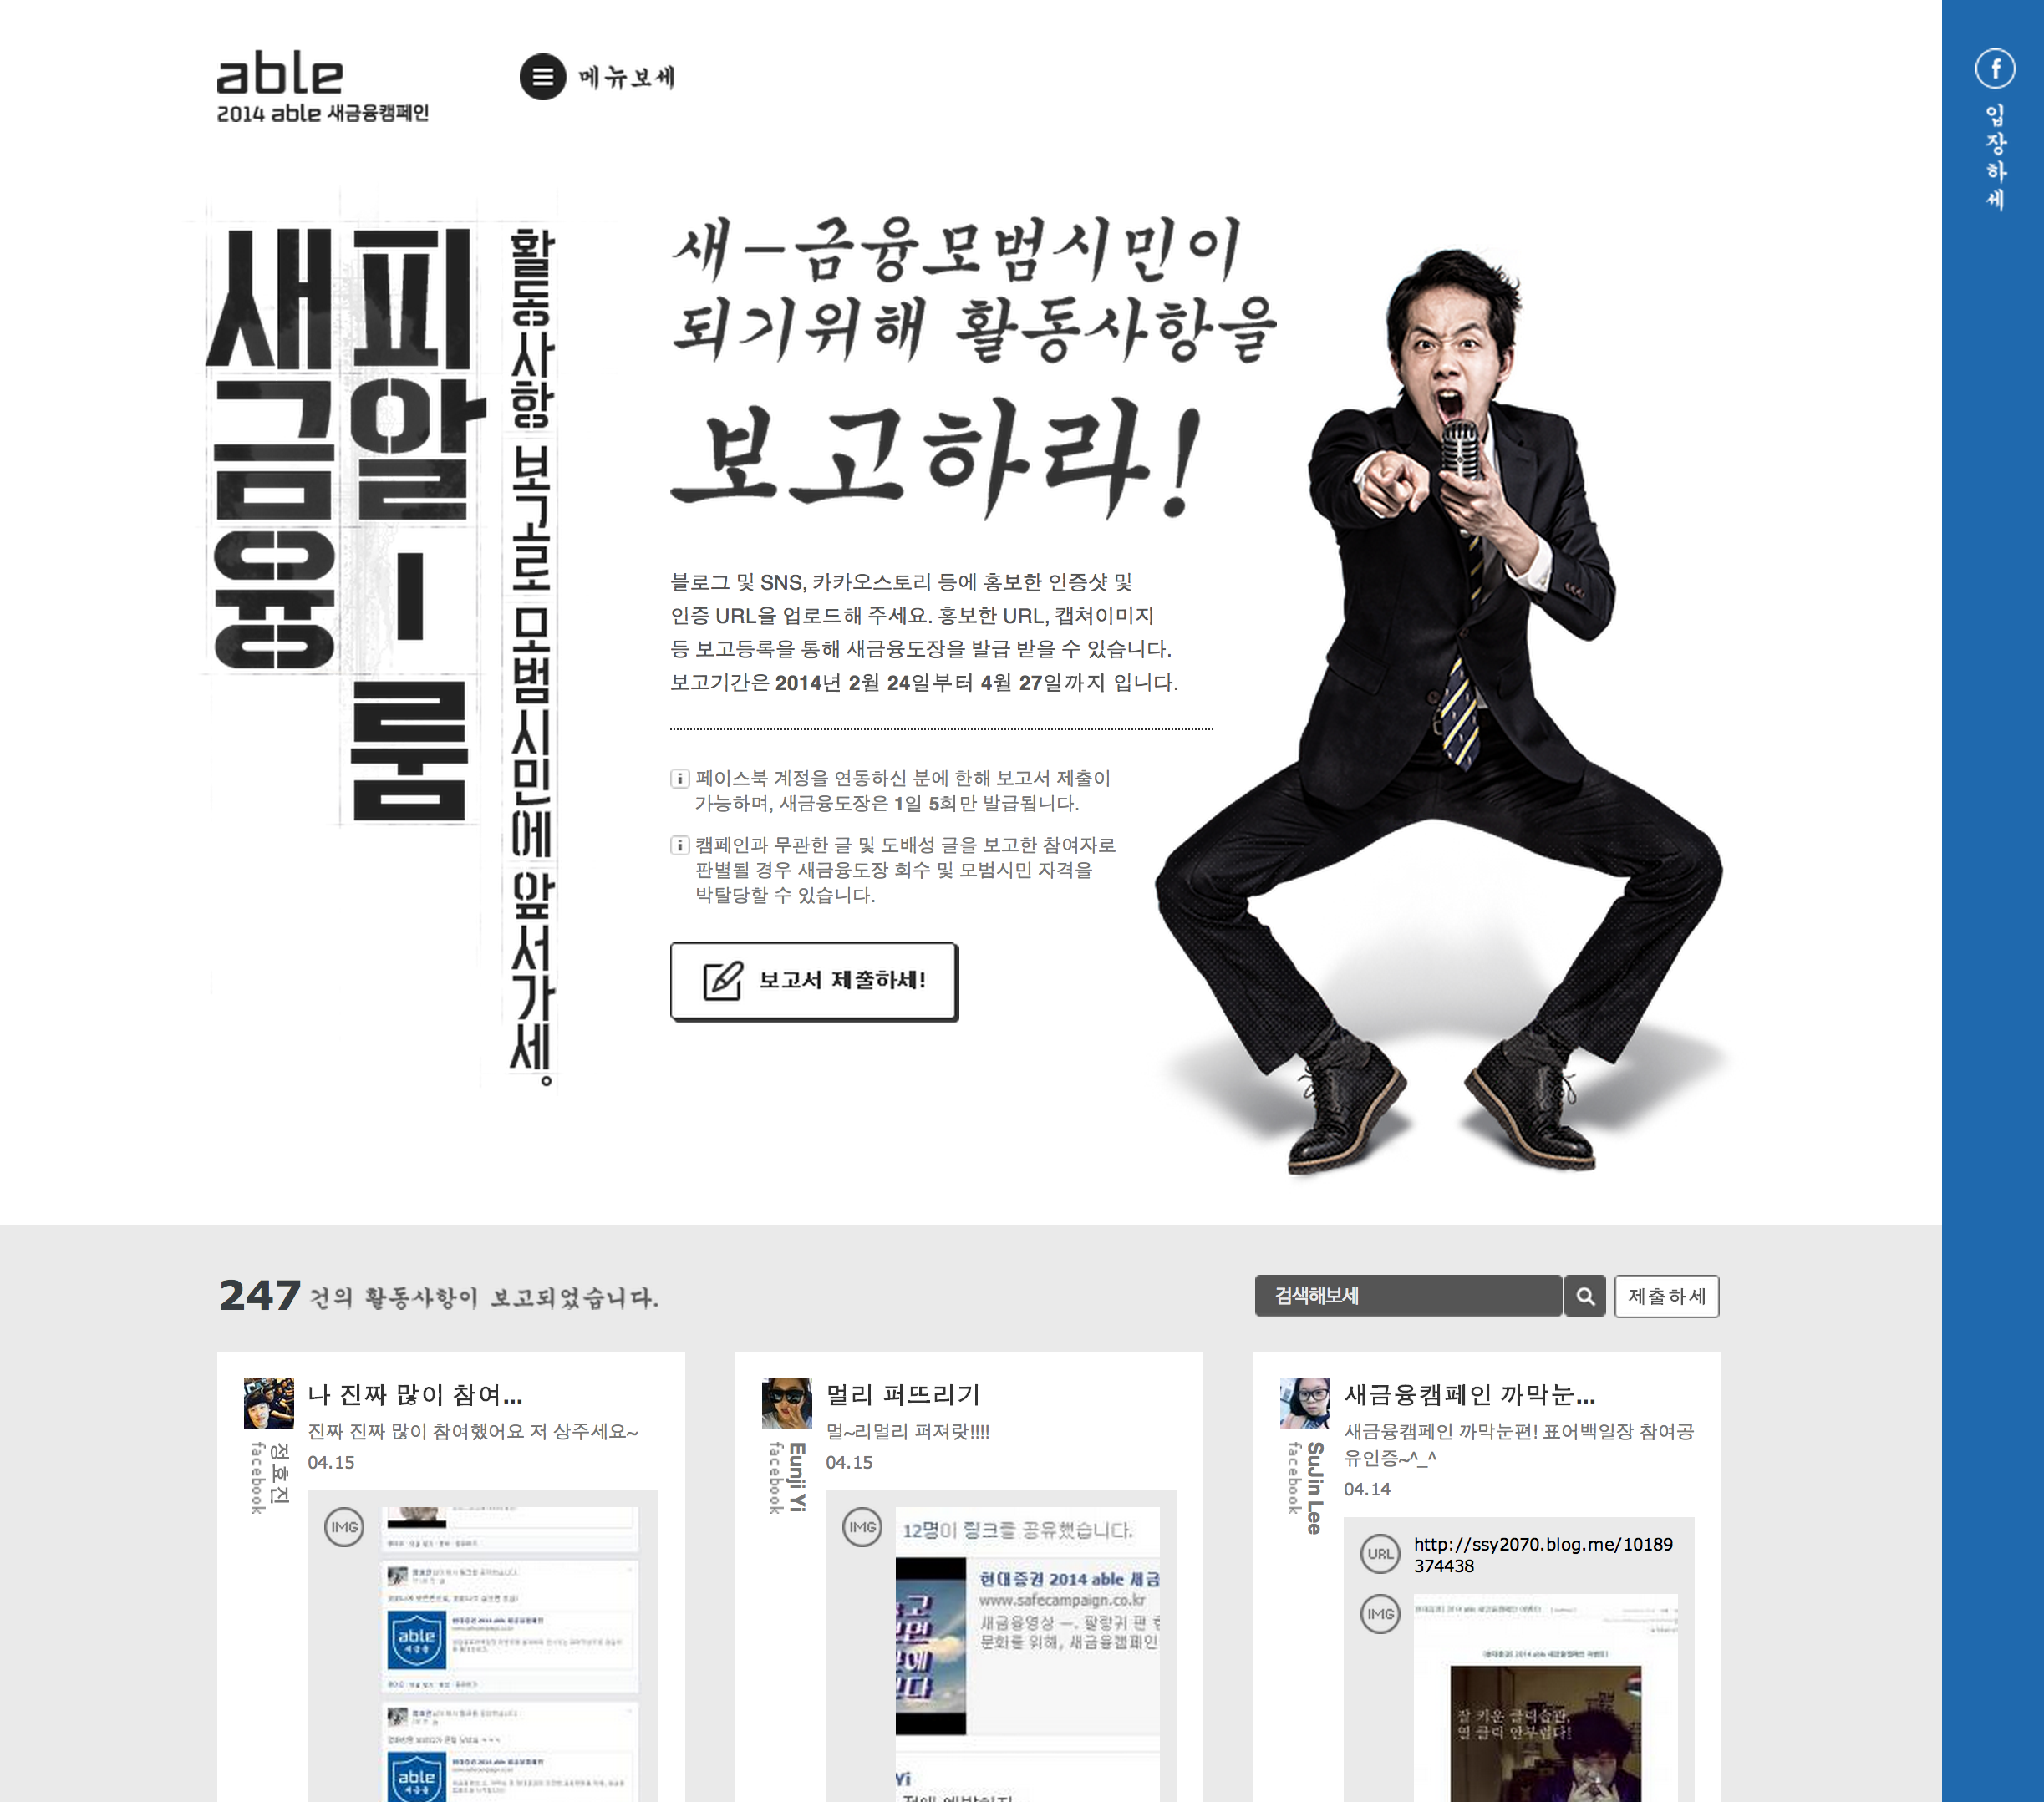 Hyndai Able Campaign Web 7.png